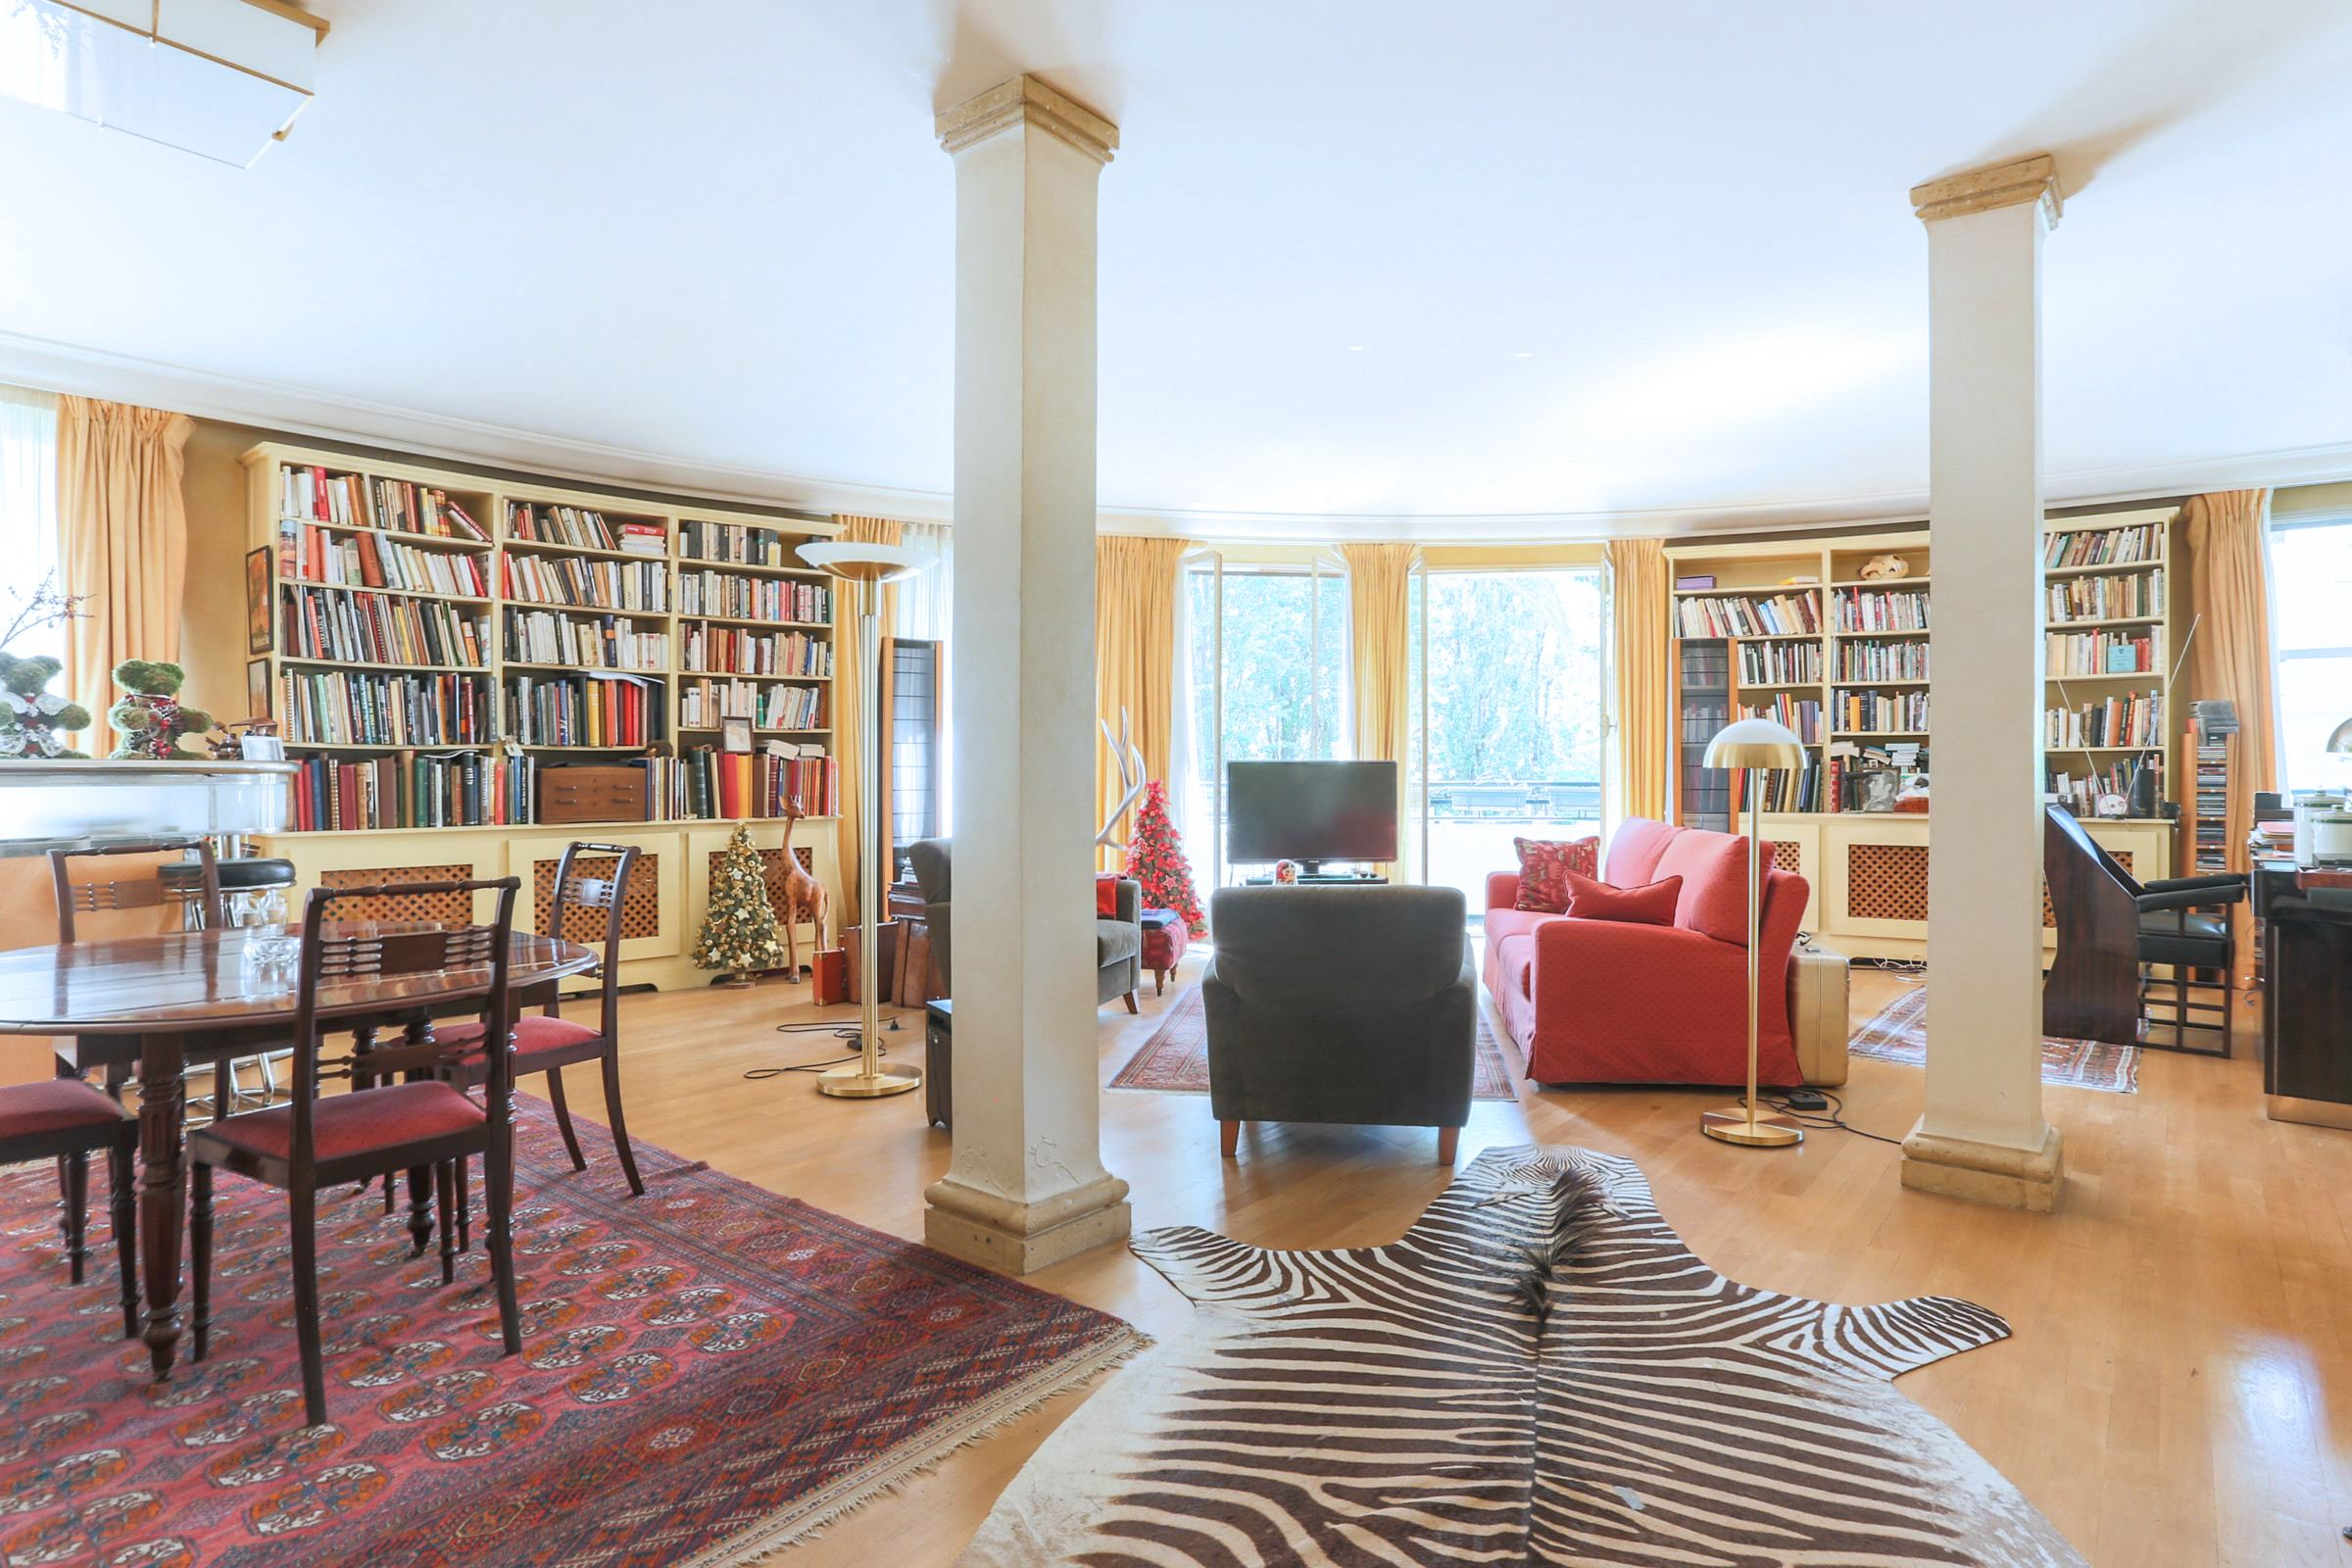 Property For Sale at Neuilly - Saint James - A 4 rooms apartment + balcony/terrace